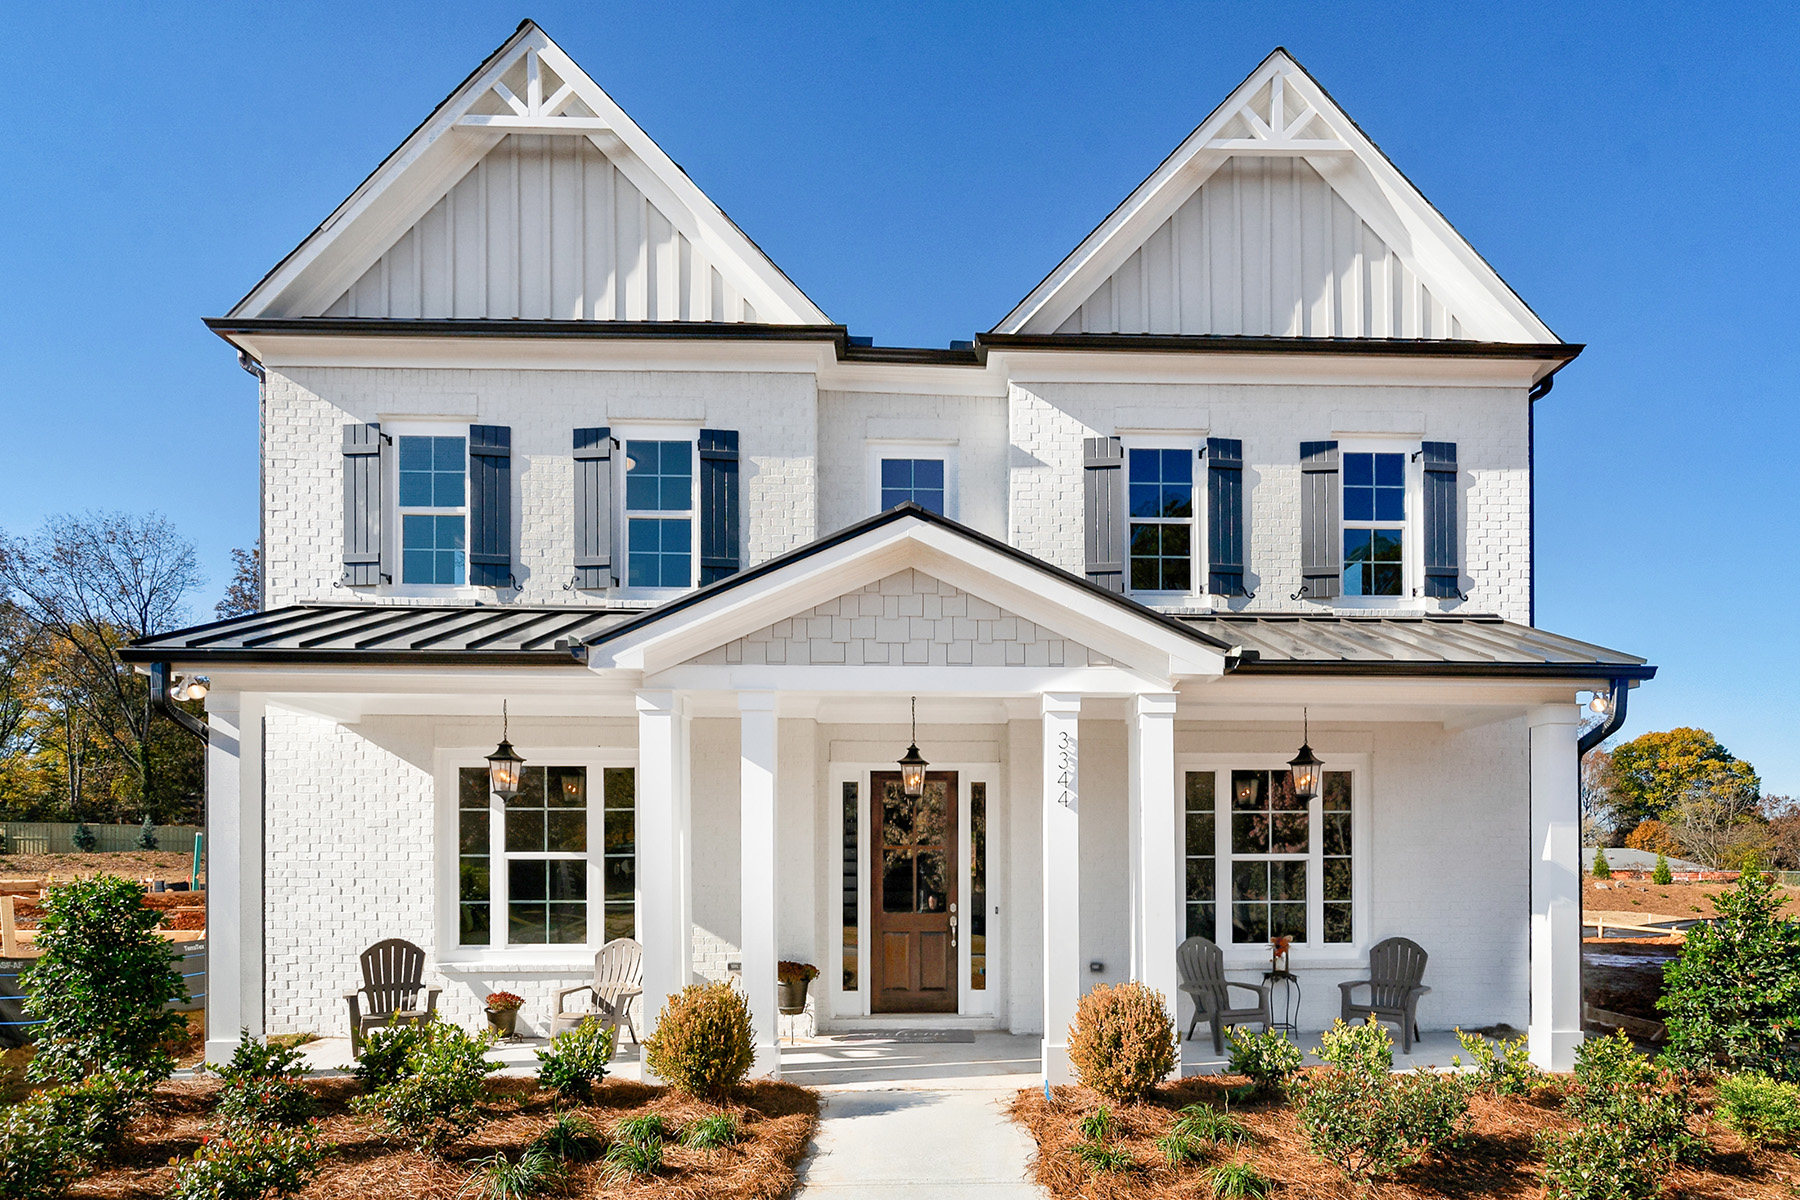 Single Family Homes for Active at New Construction in Smyrna with Master on the Main 3352 Old Concord Road Smyrna, Georgia 30082 United States